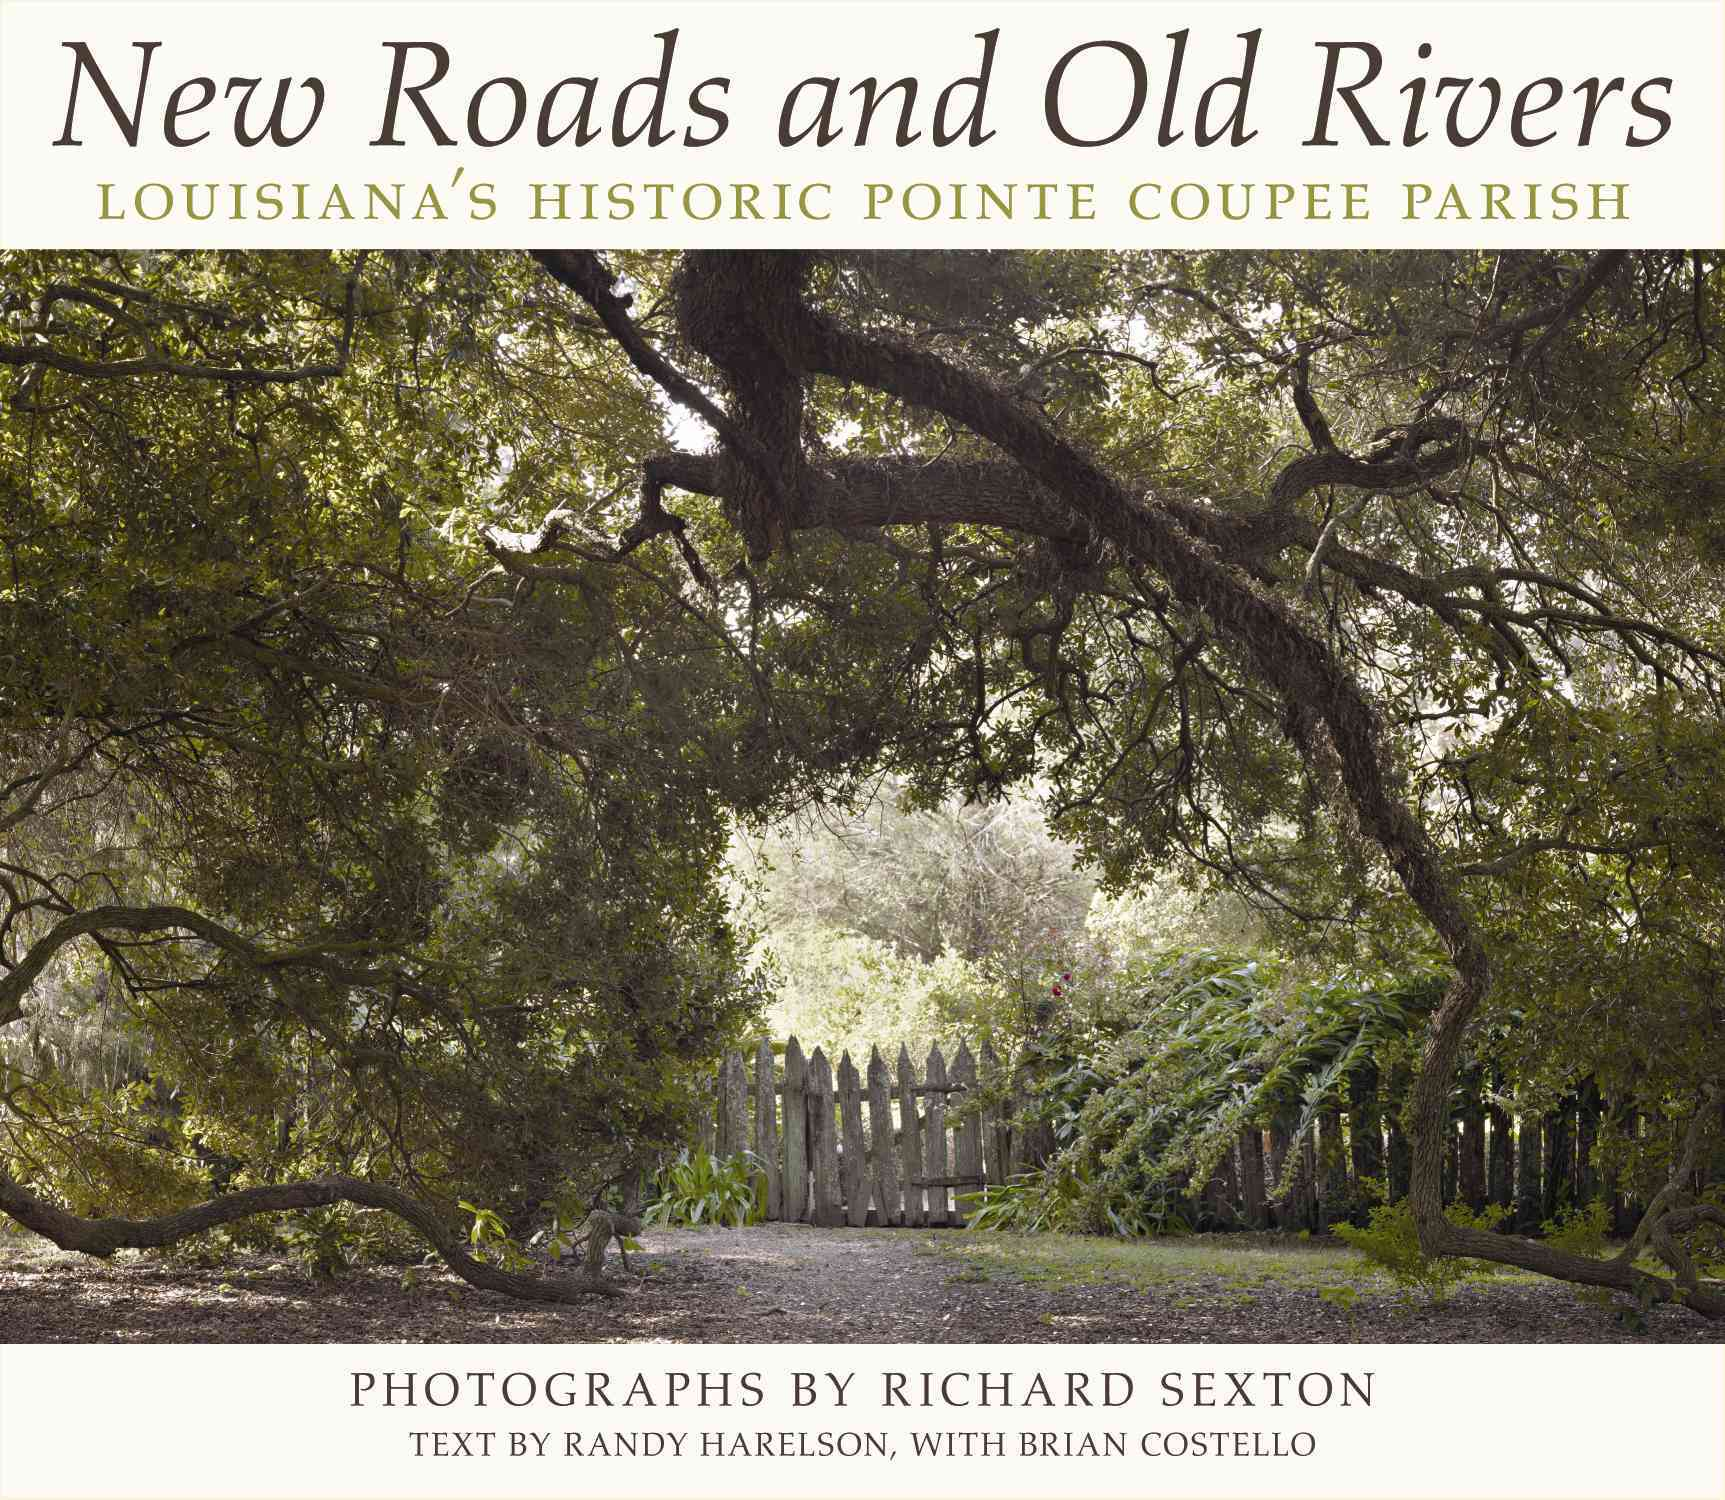 New Roads and Old Rivers: Louisiana's Historic Pointe Coupee Parish (Hardcover)